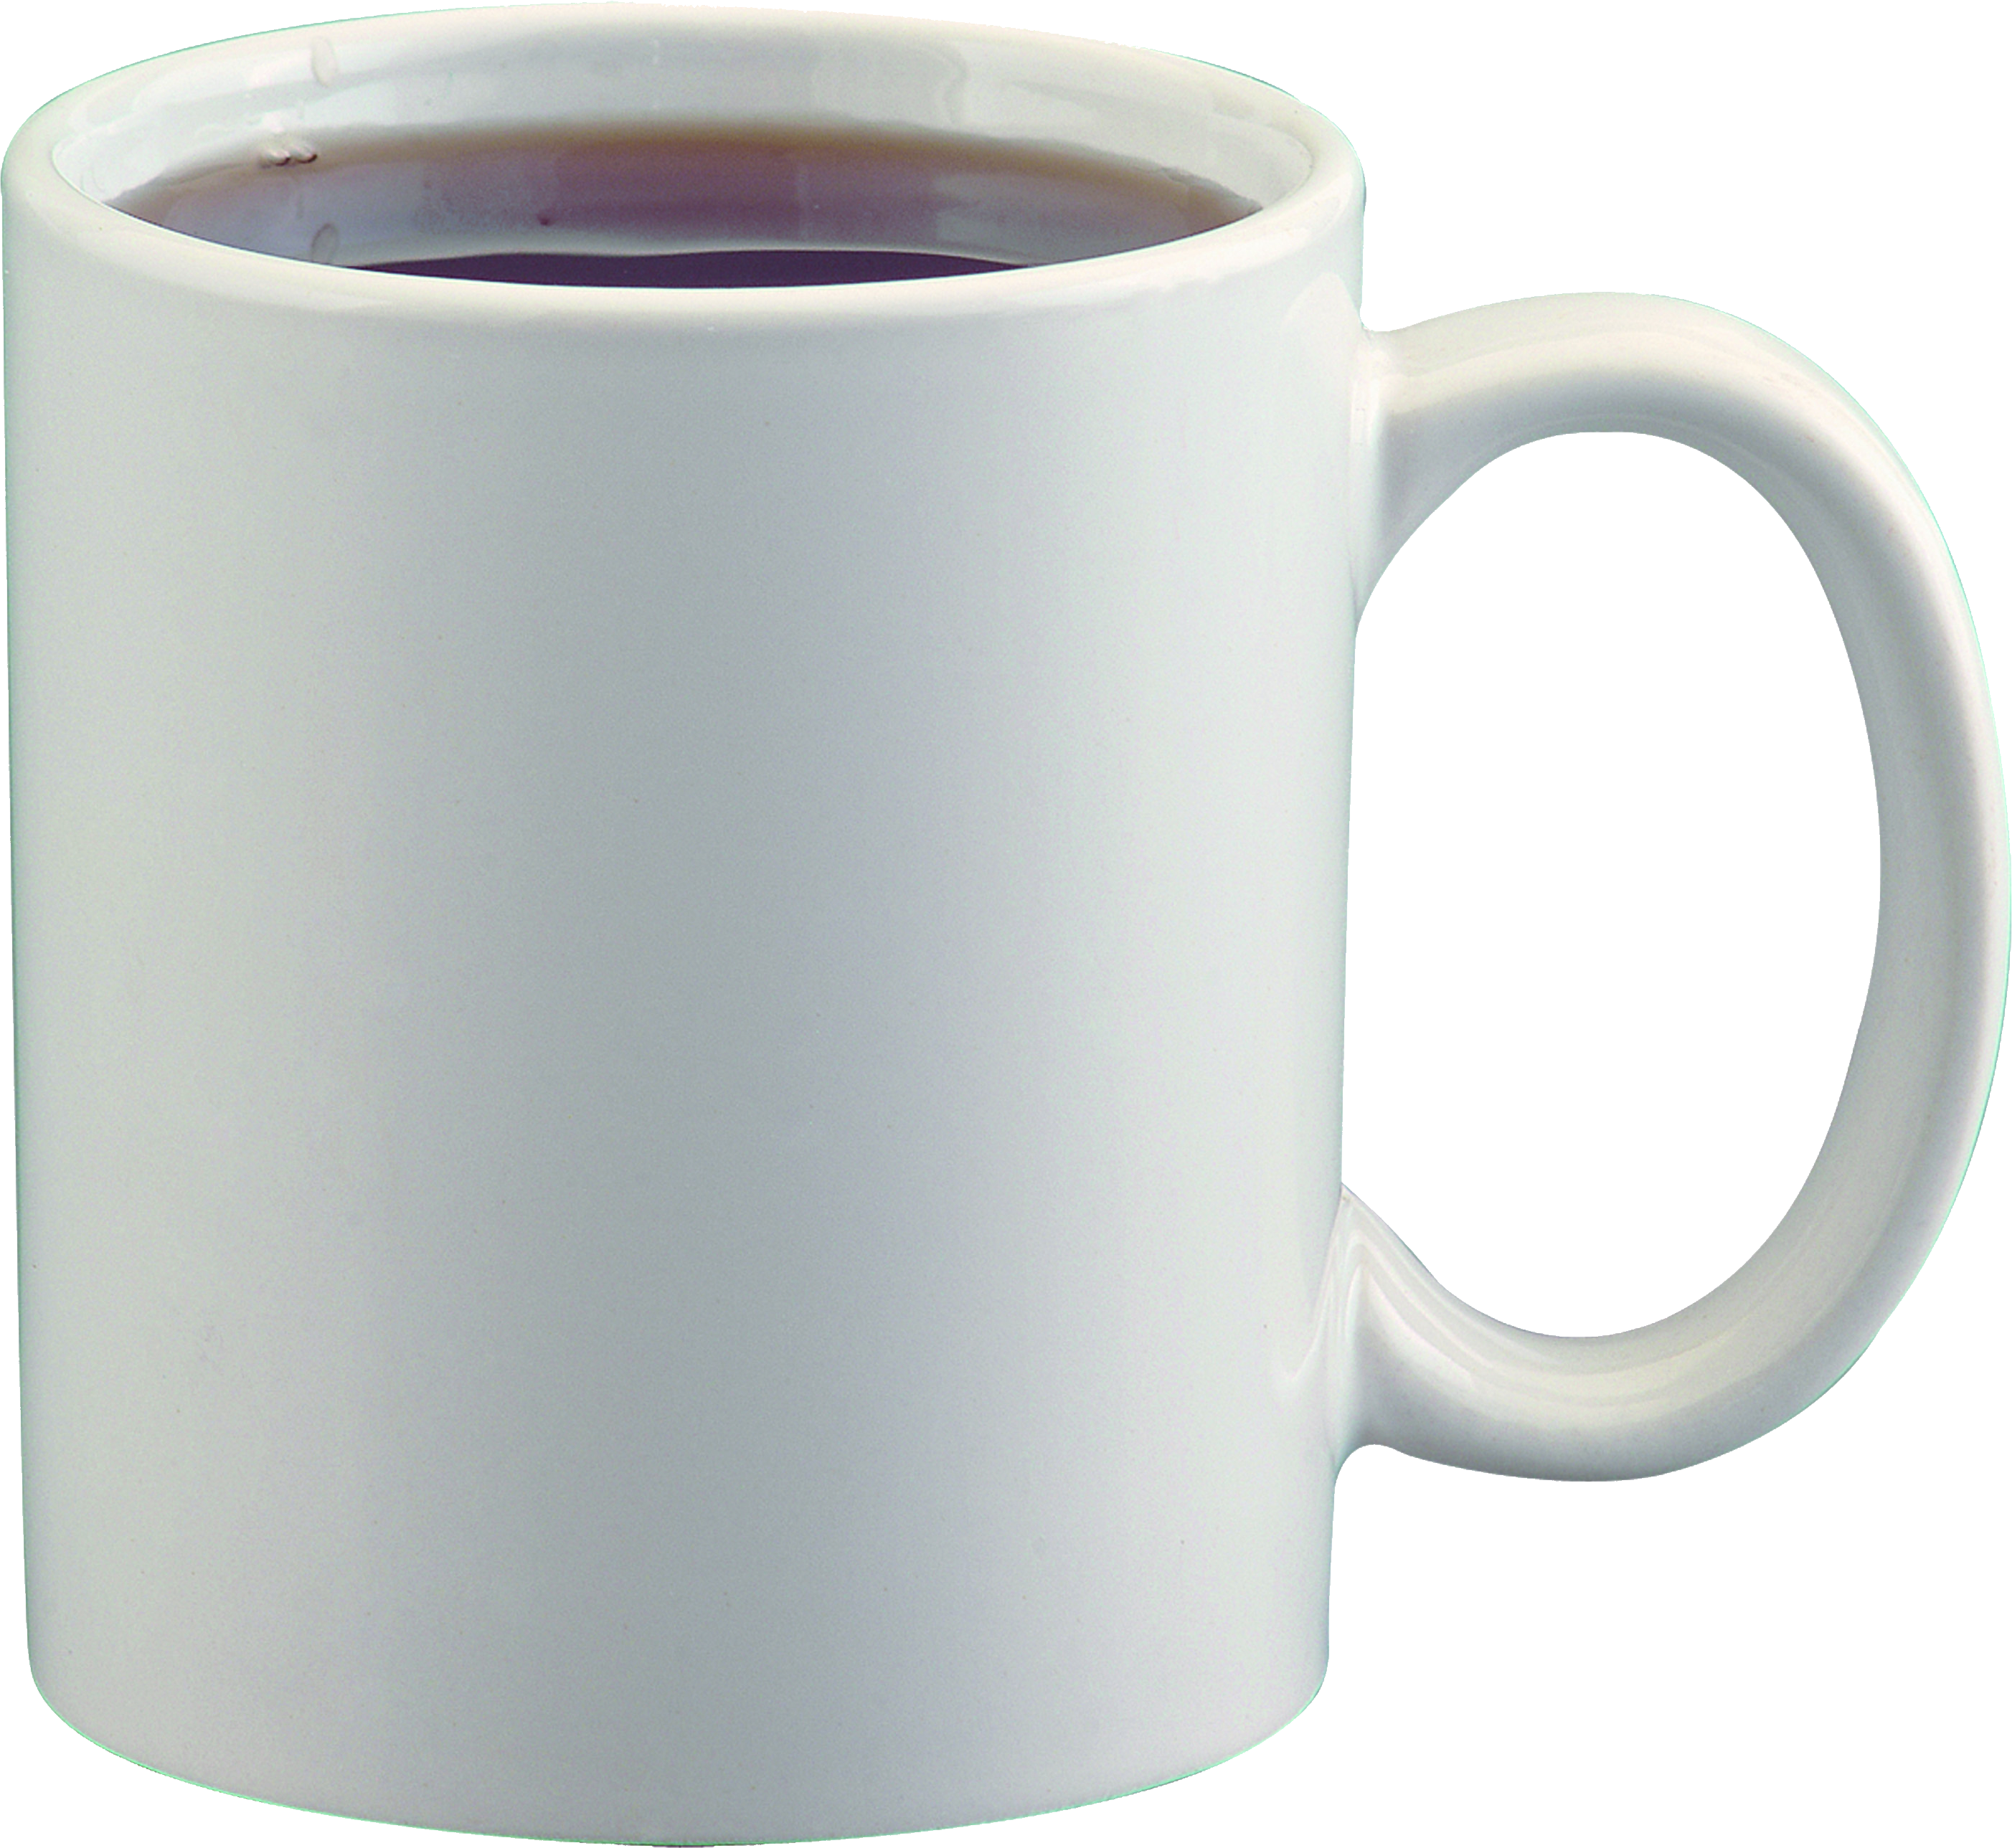 clipart freeuse library Mug coffee png . Mugs clipart transparent background